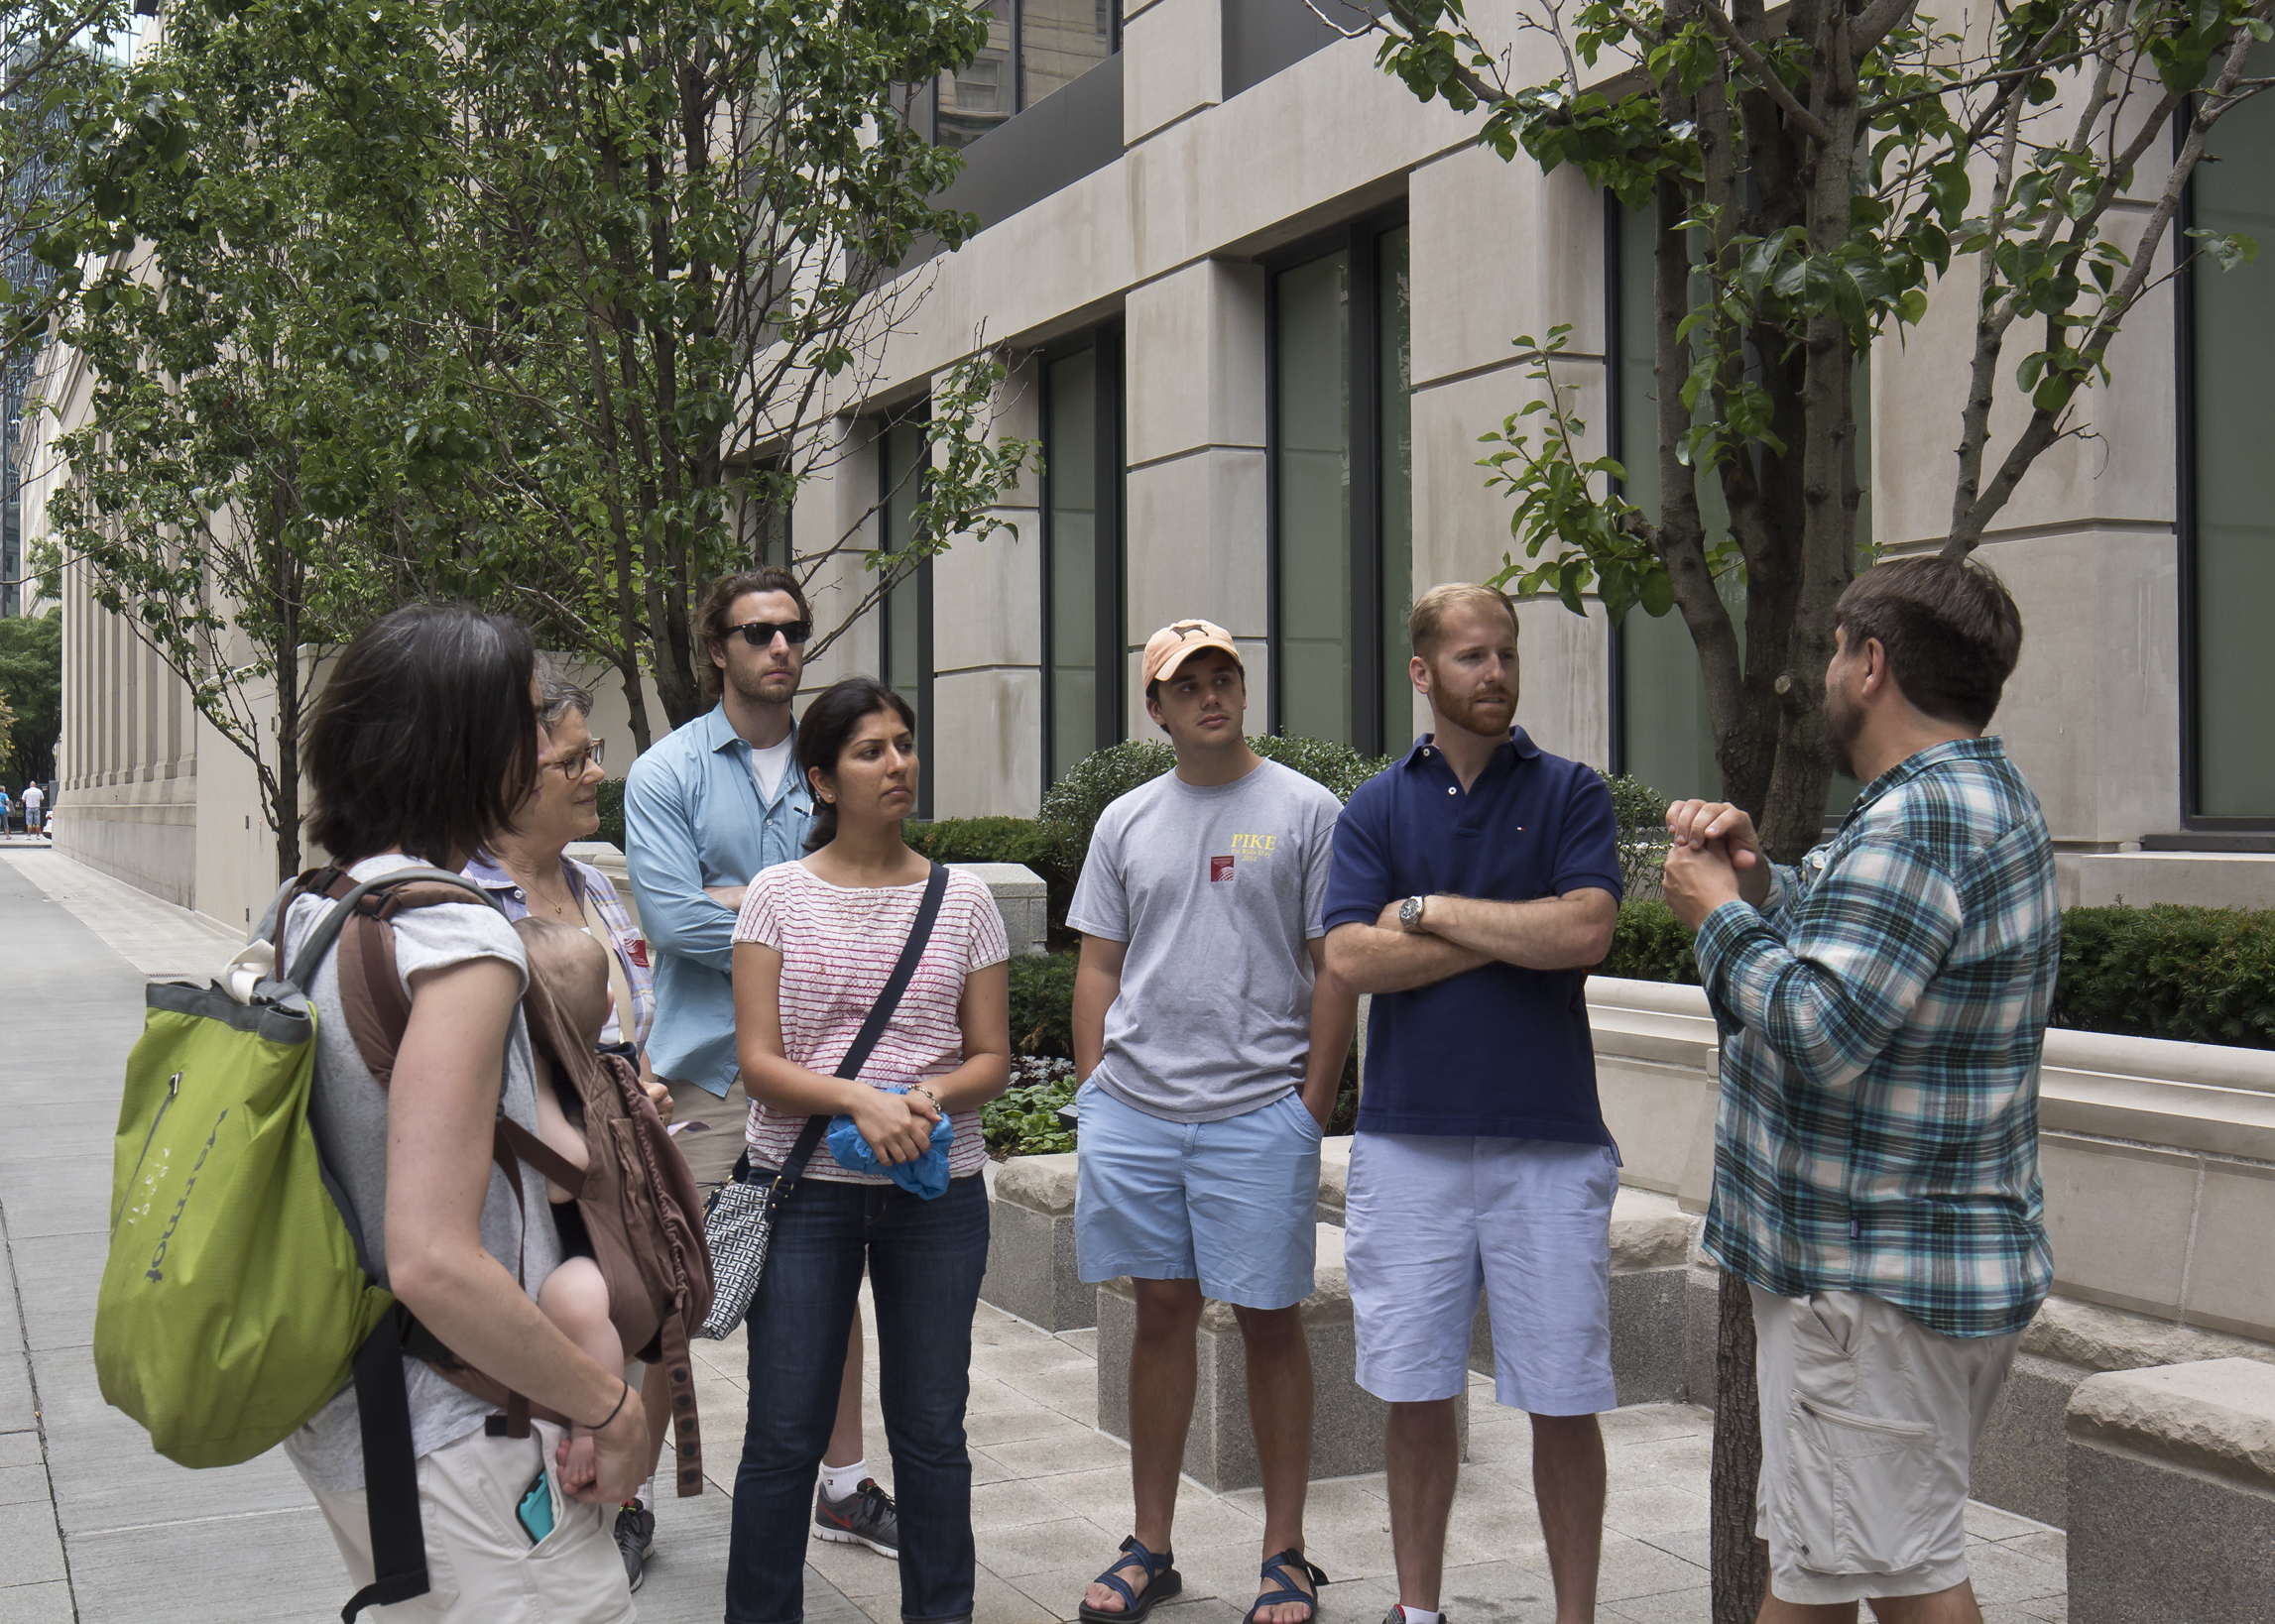 Chris explains features of a recently completed project downtown